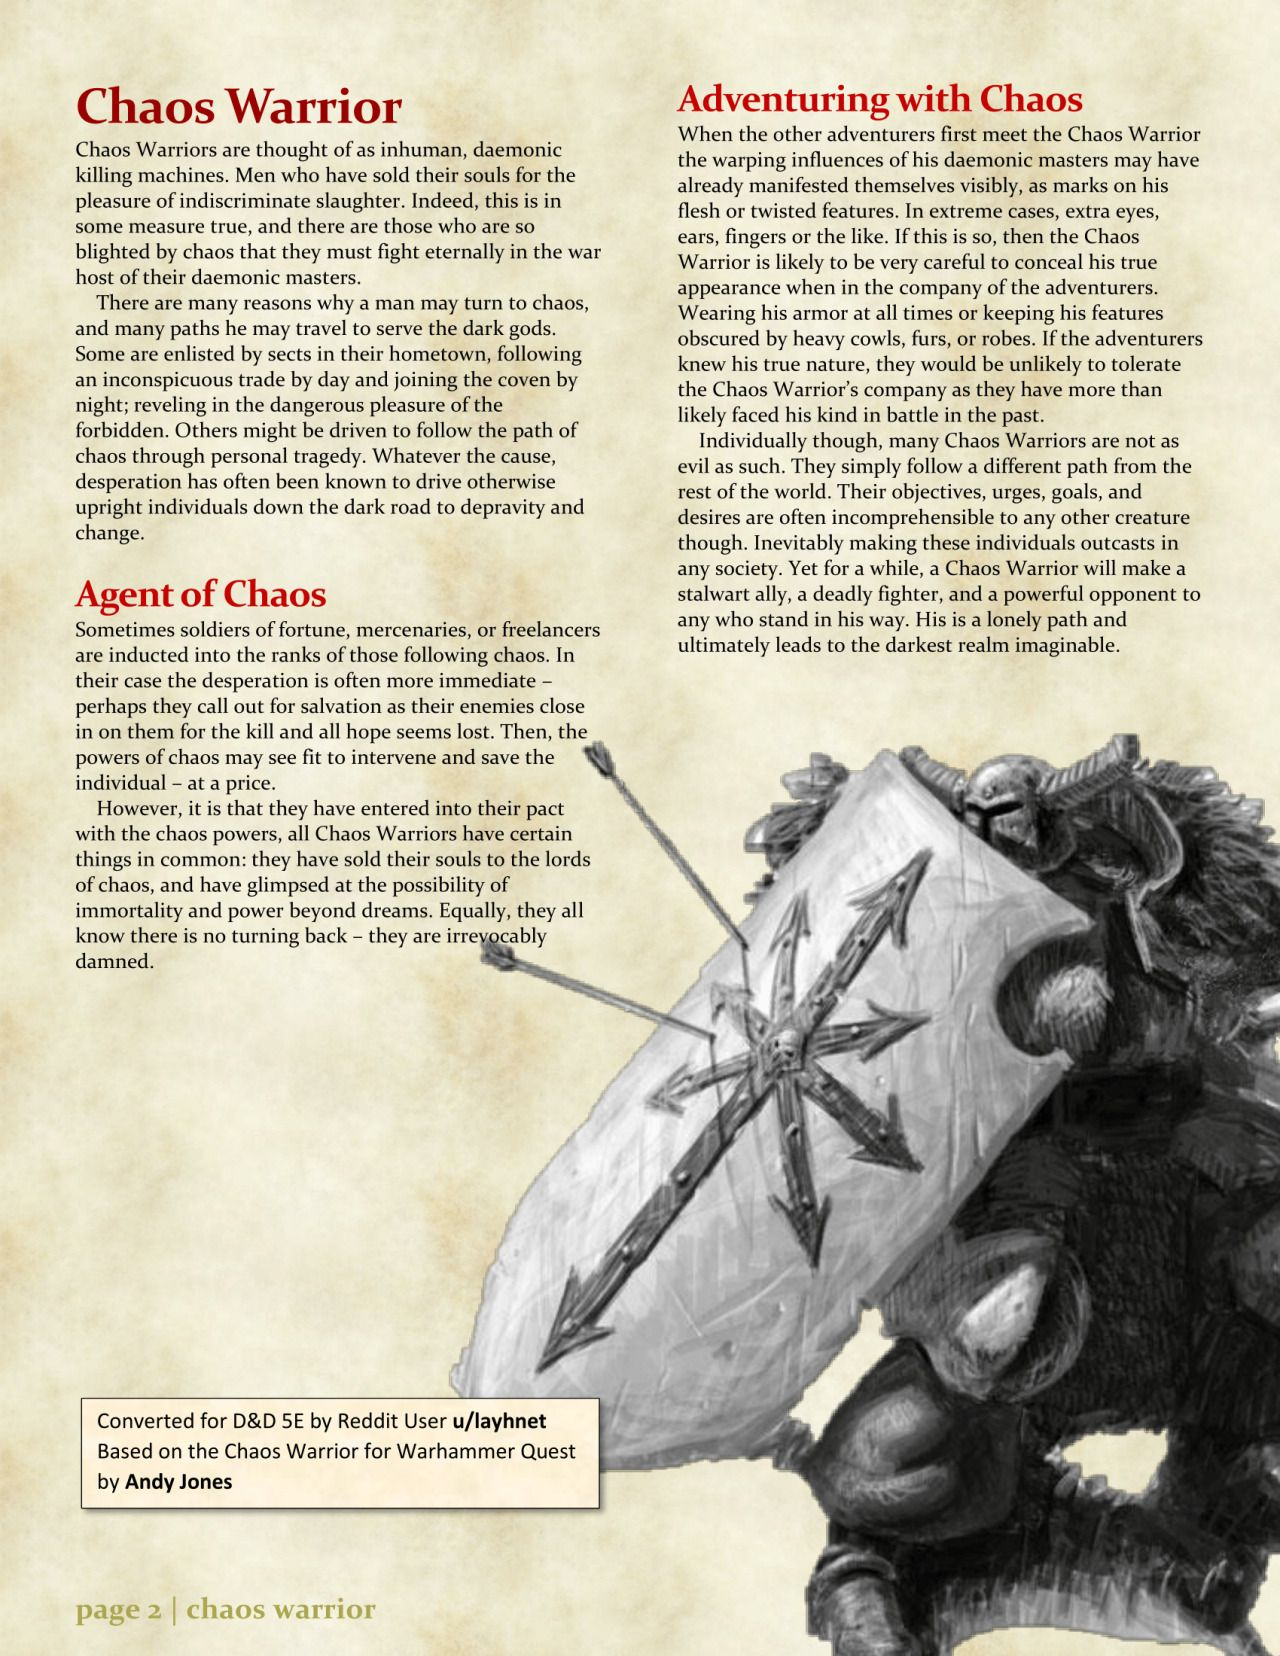 Pin by timmy tonesy on Gaming inspiration | Dnd 5e homebrew